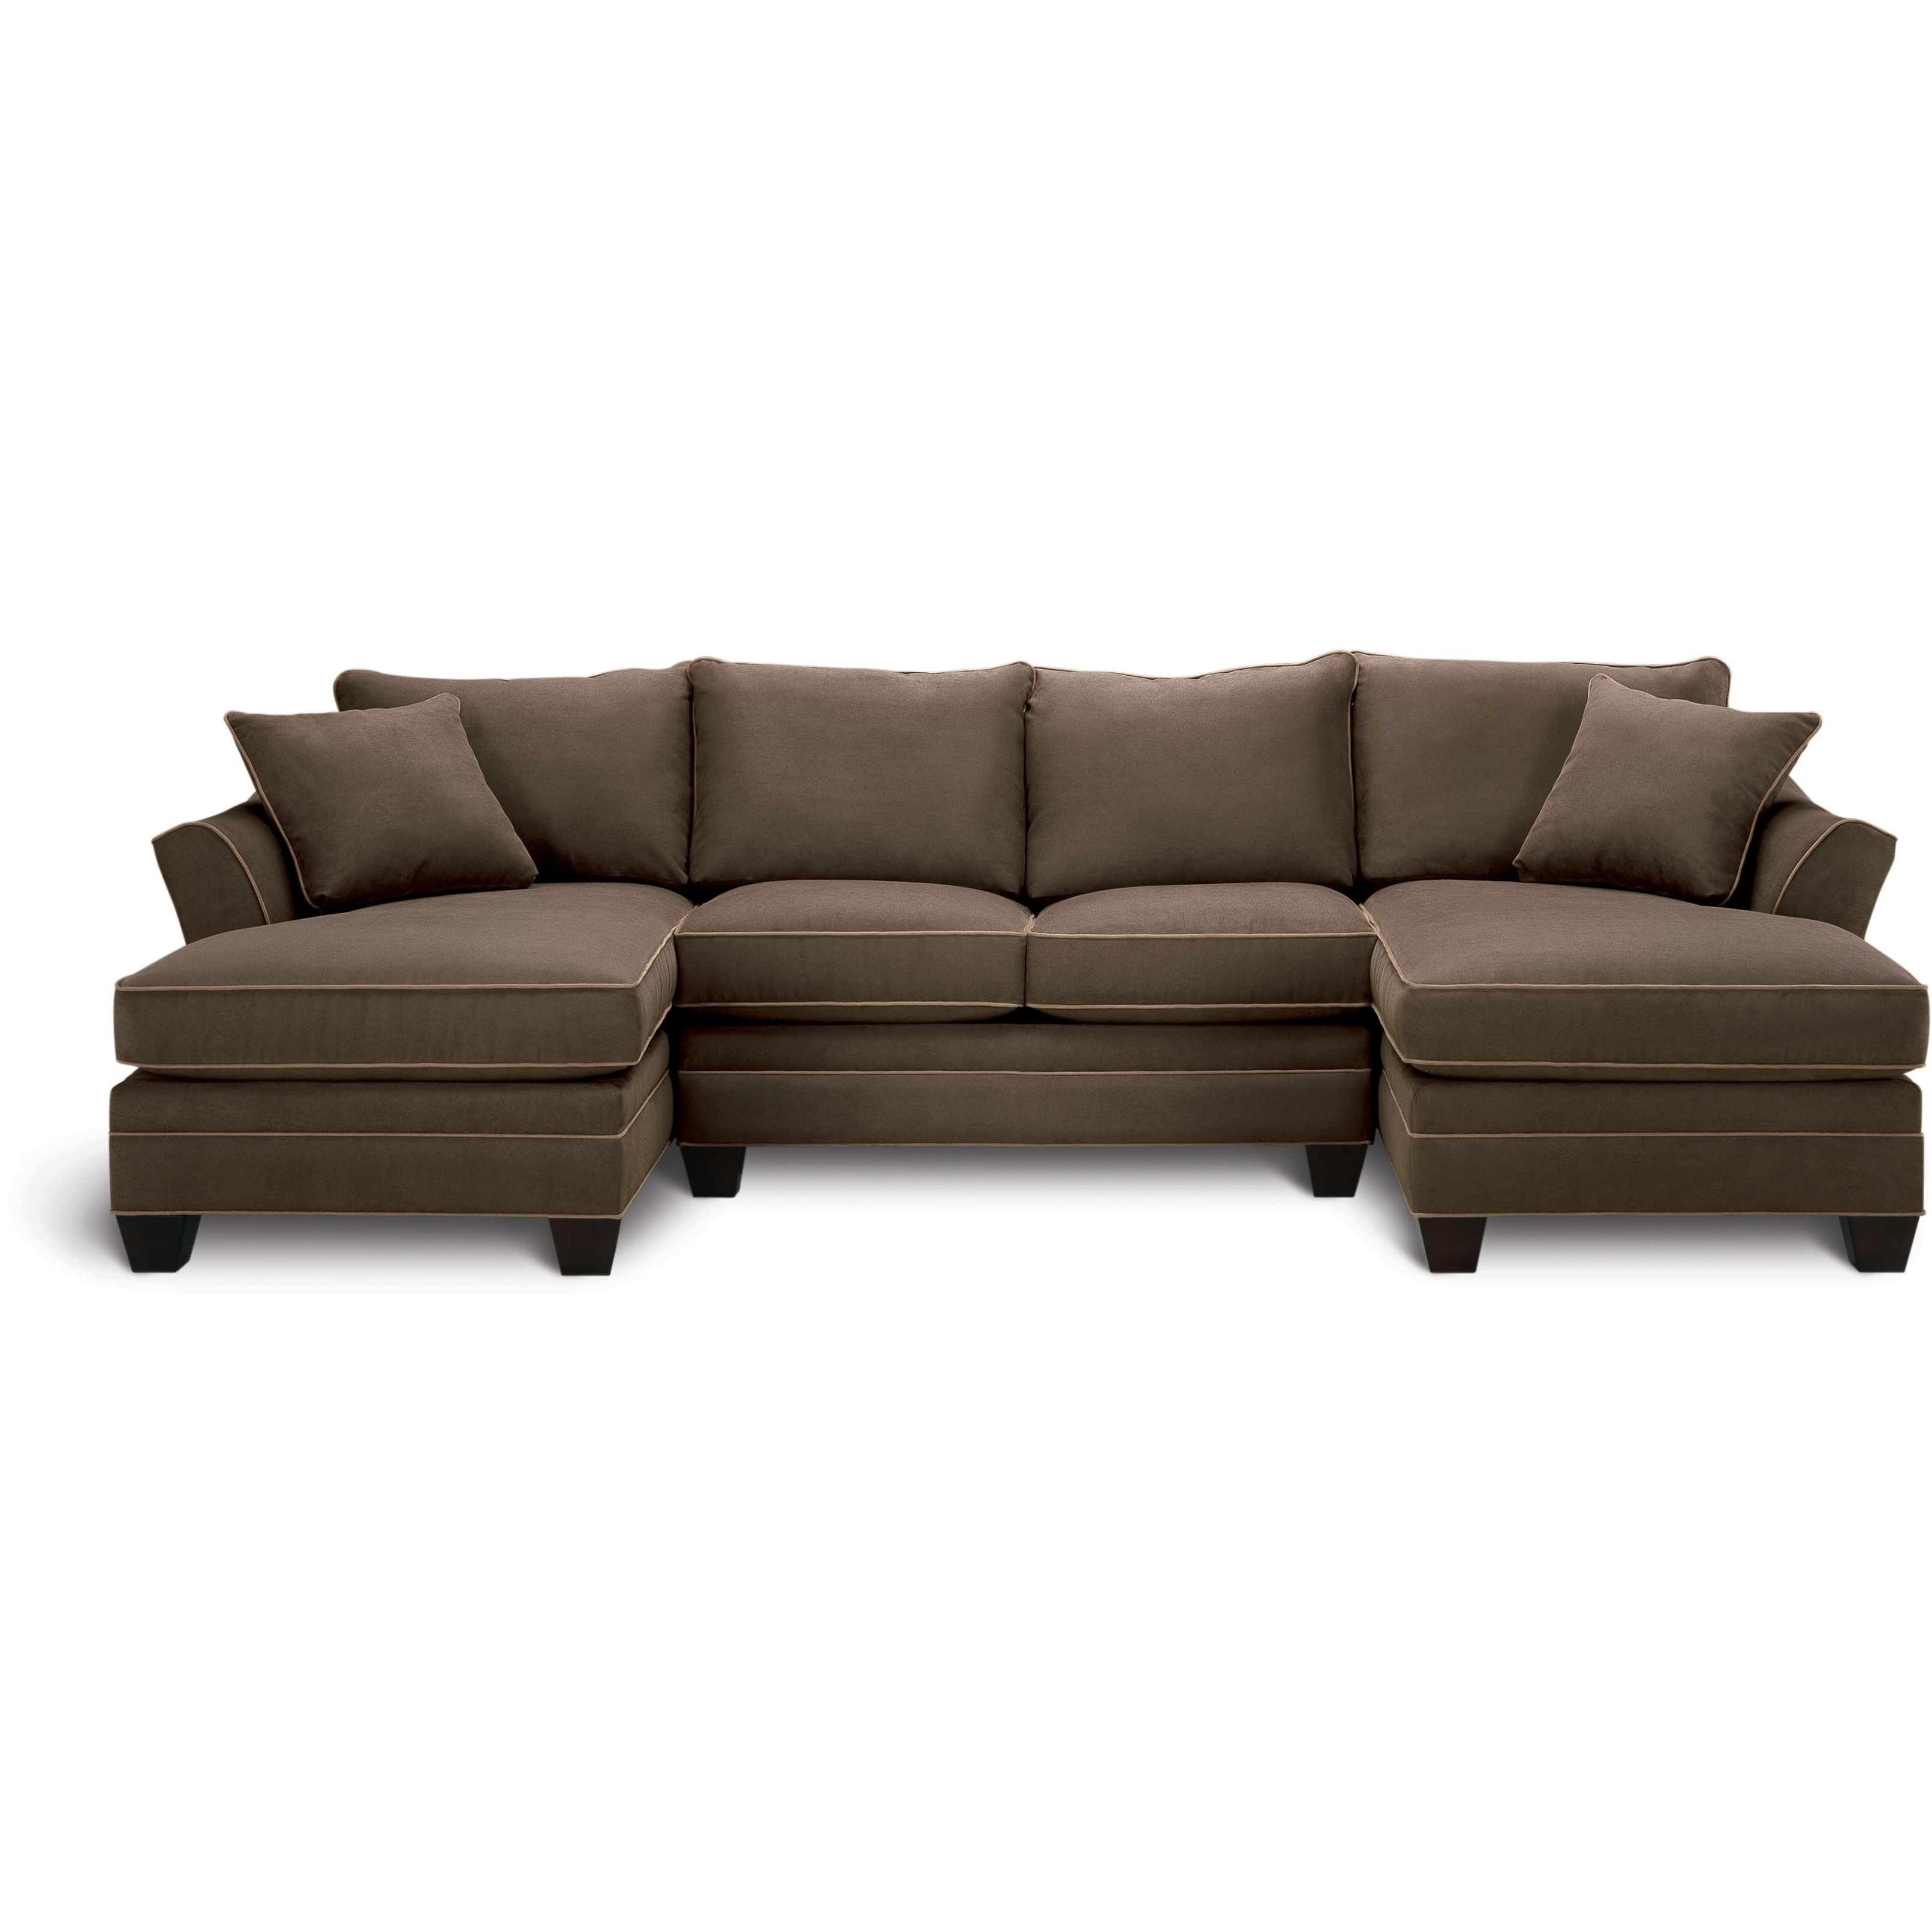 Make The Most Of Your Space With The Dillon Sectional That Offers Pertaining To Well Known Sectional Sofas Art Van (View 11 of 15)